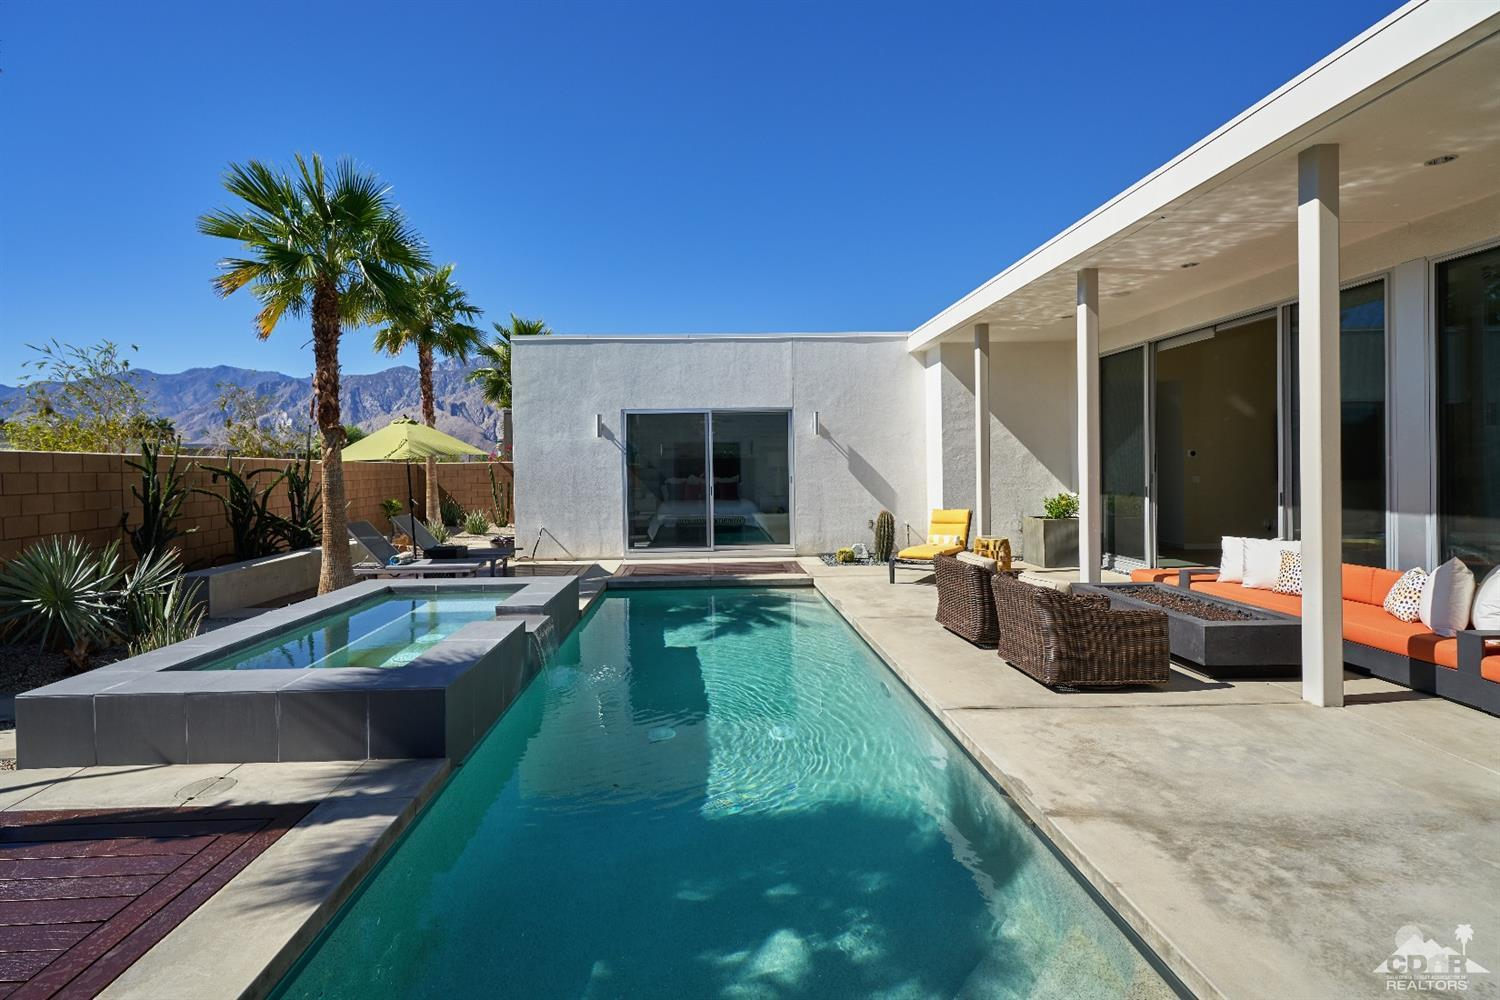 603 Bliss Way, Palm Springs, California 92262, 3 Bedrooms Bedrooms, ,4 BathroomsBathrooms,Residential,Sold,603 Bliss Way,218028054